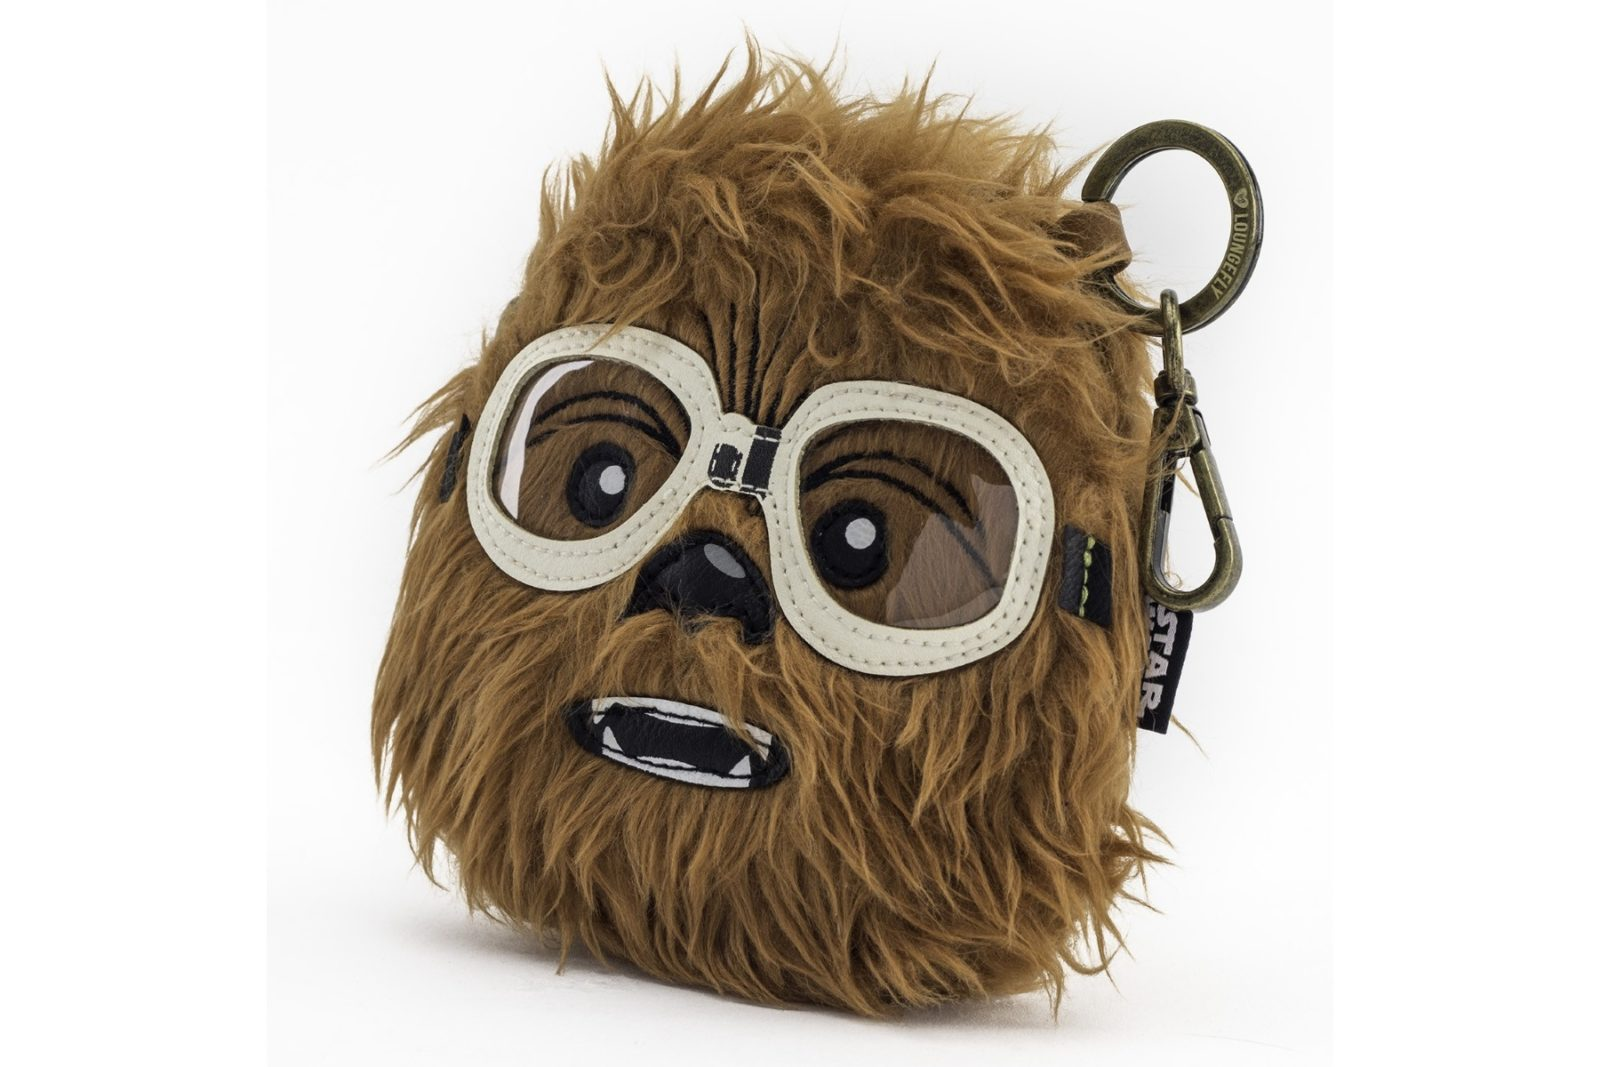 New Loungefly Solo Chewbacca Coin Purse